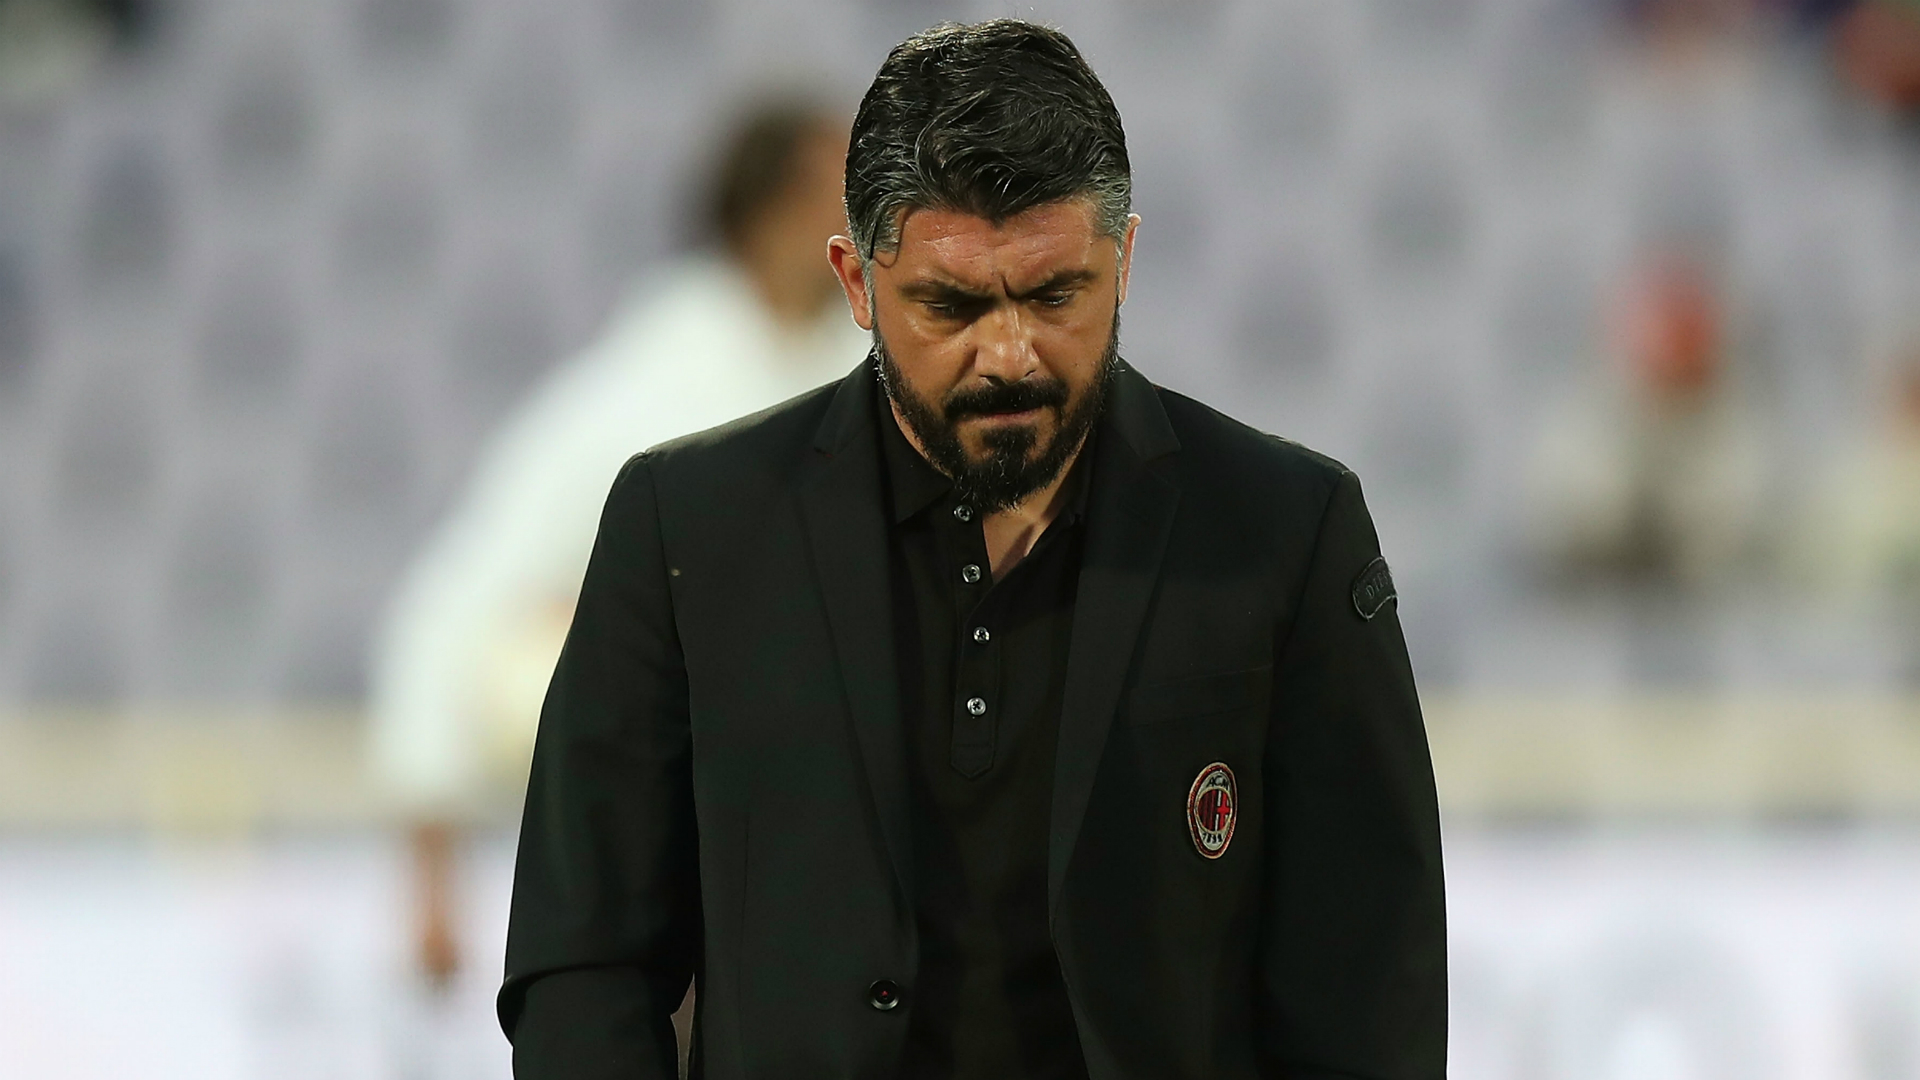 'I'm in pieces' – Gattuso to consider Milan future